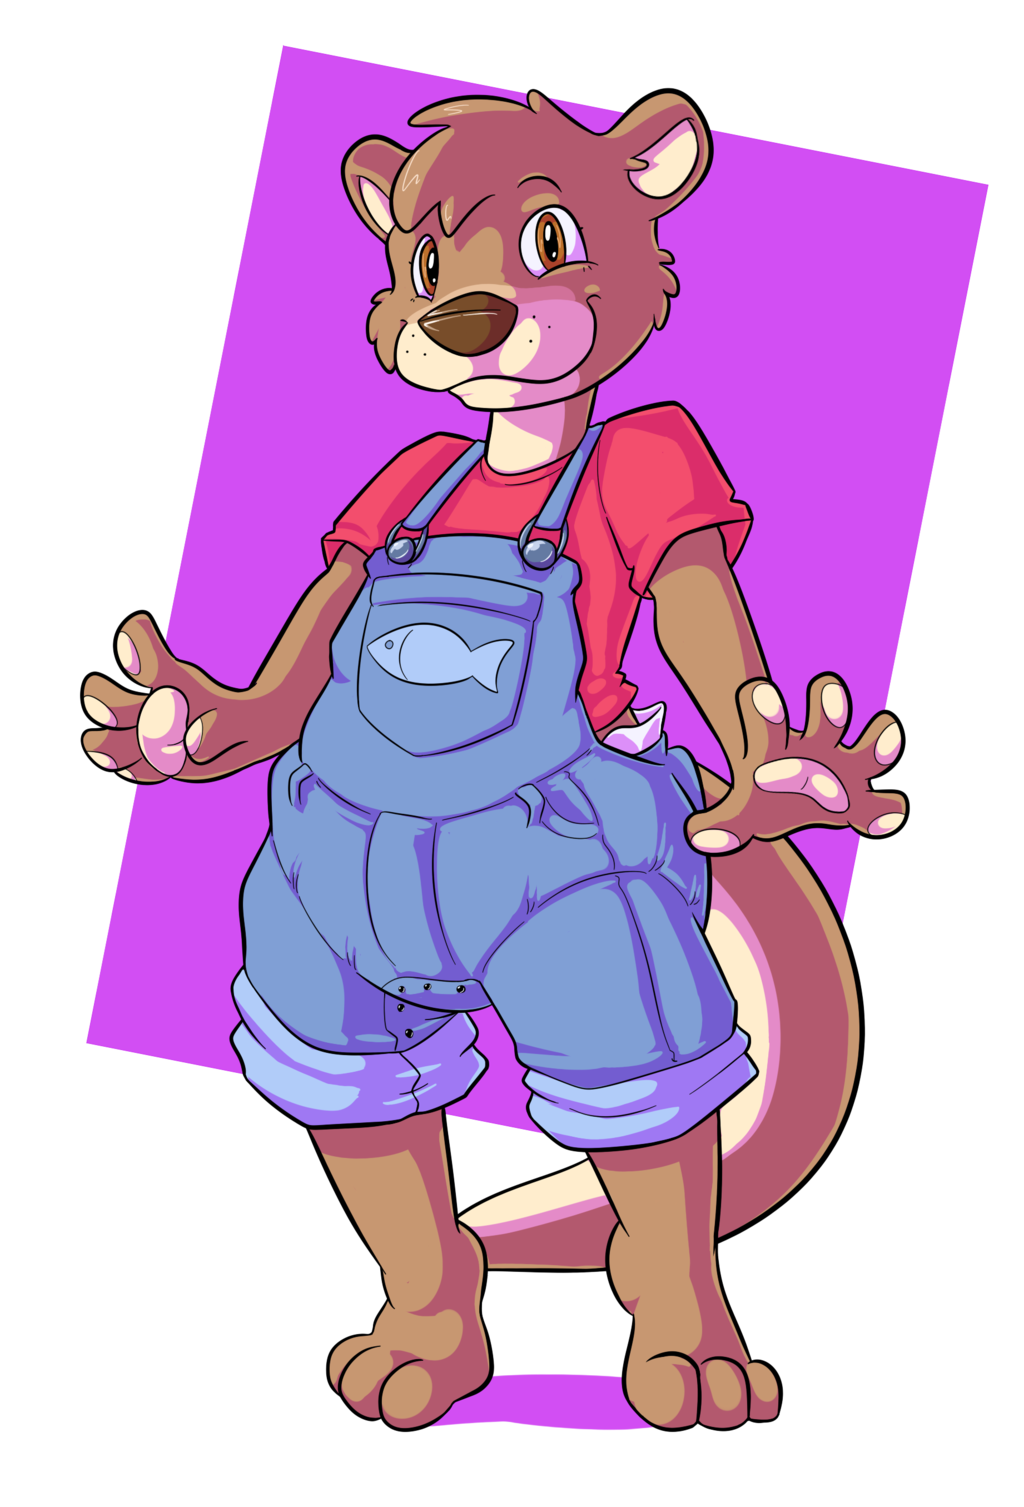 Overall, pretty otter-y